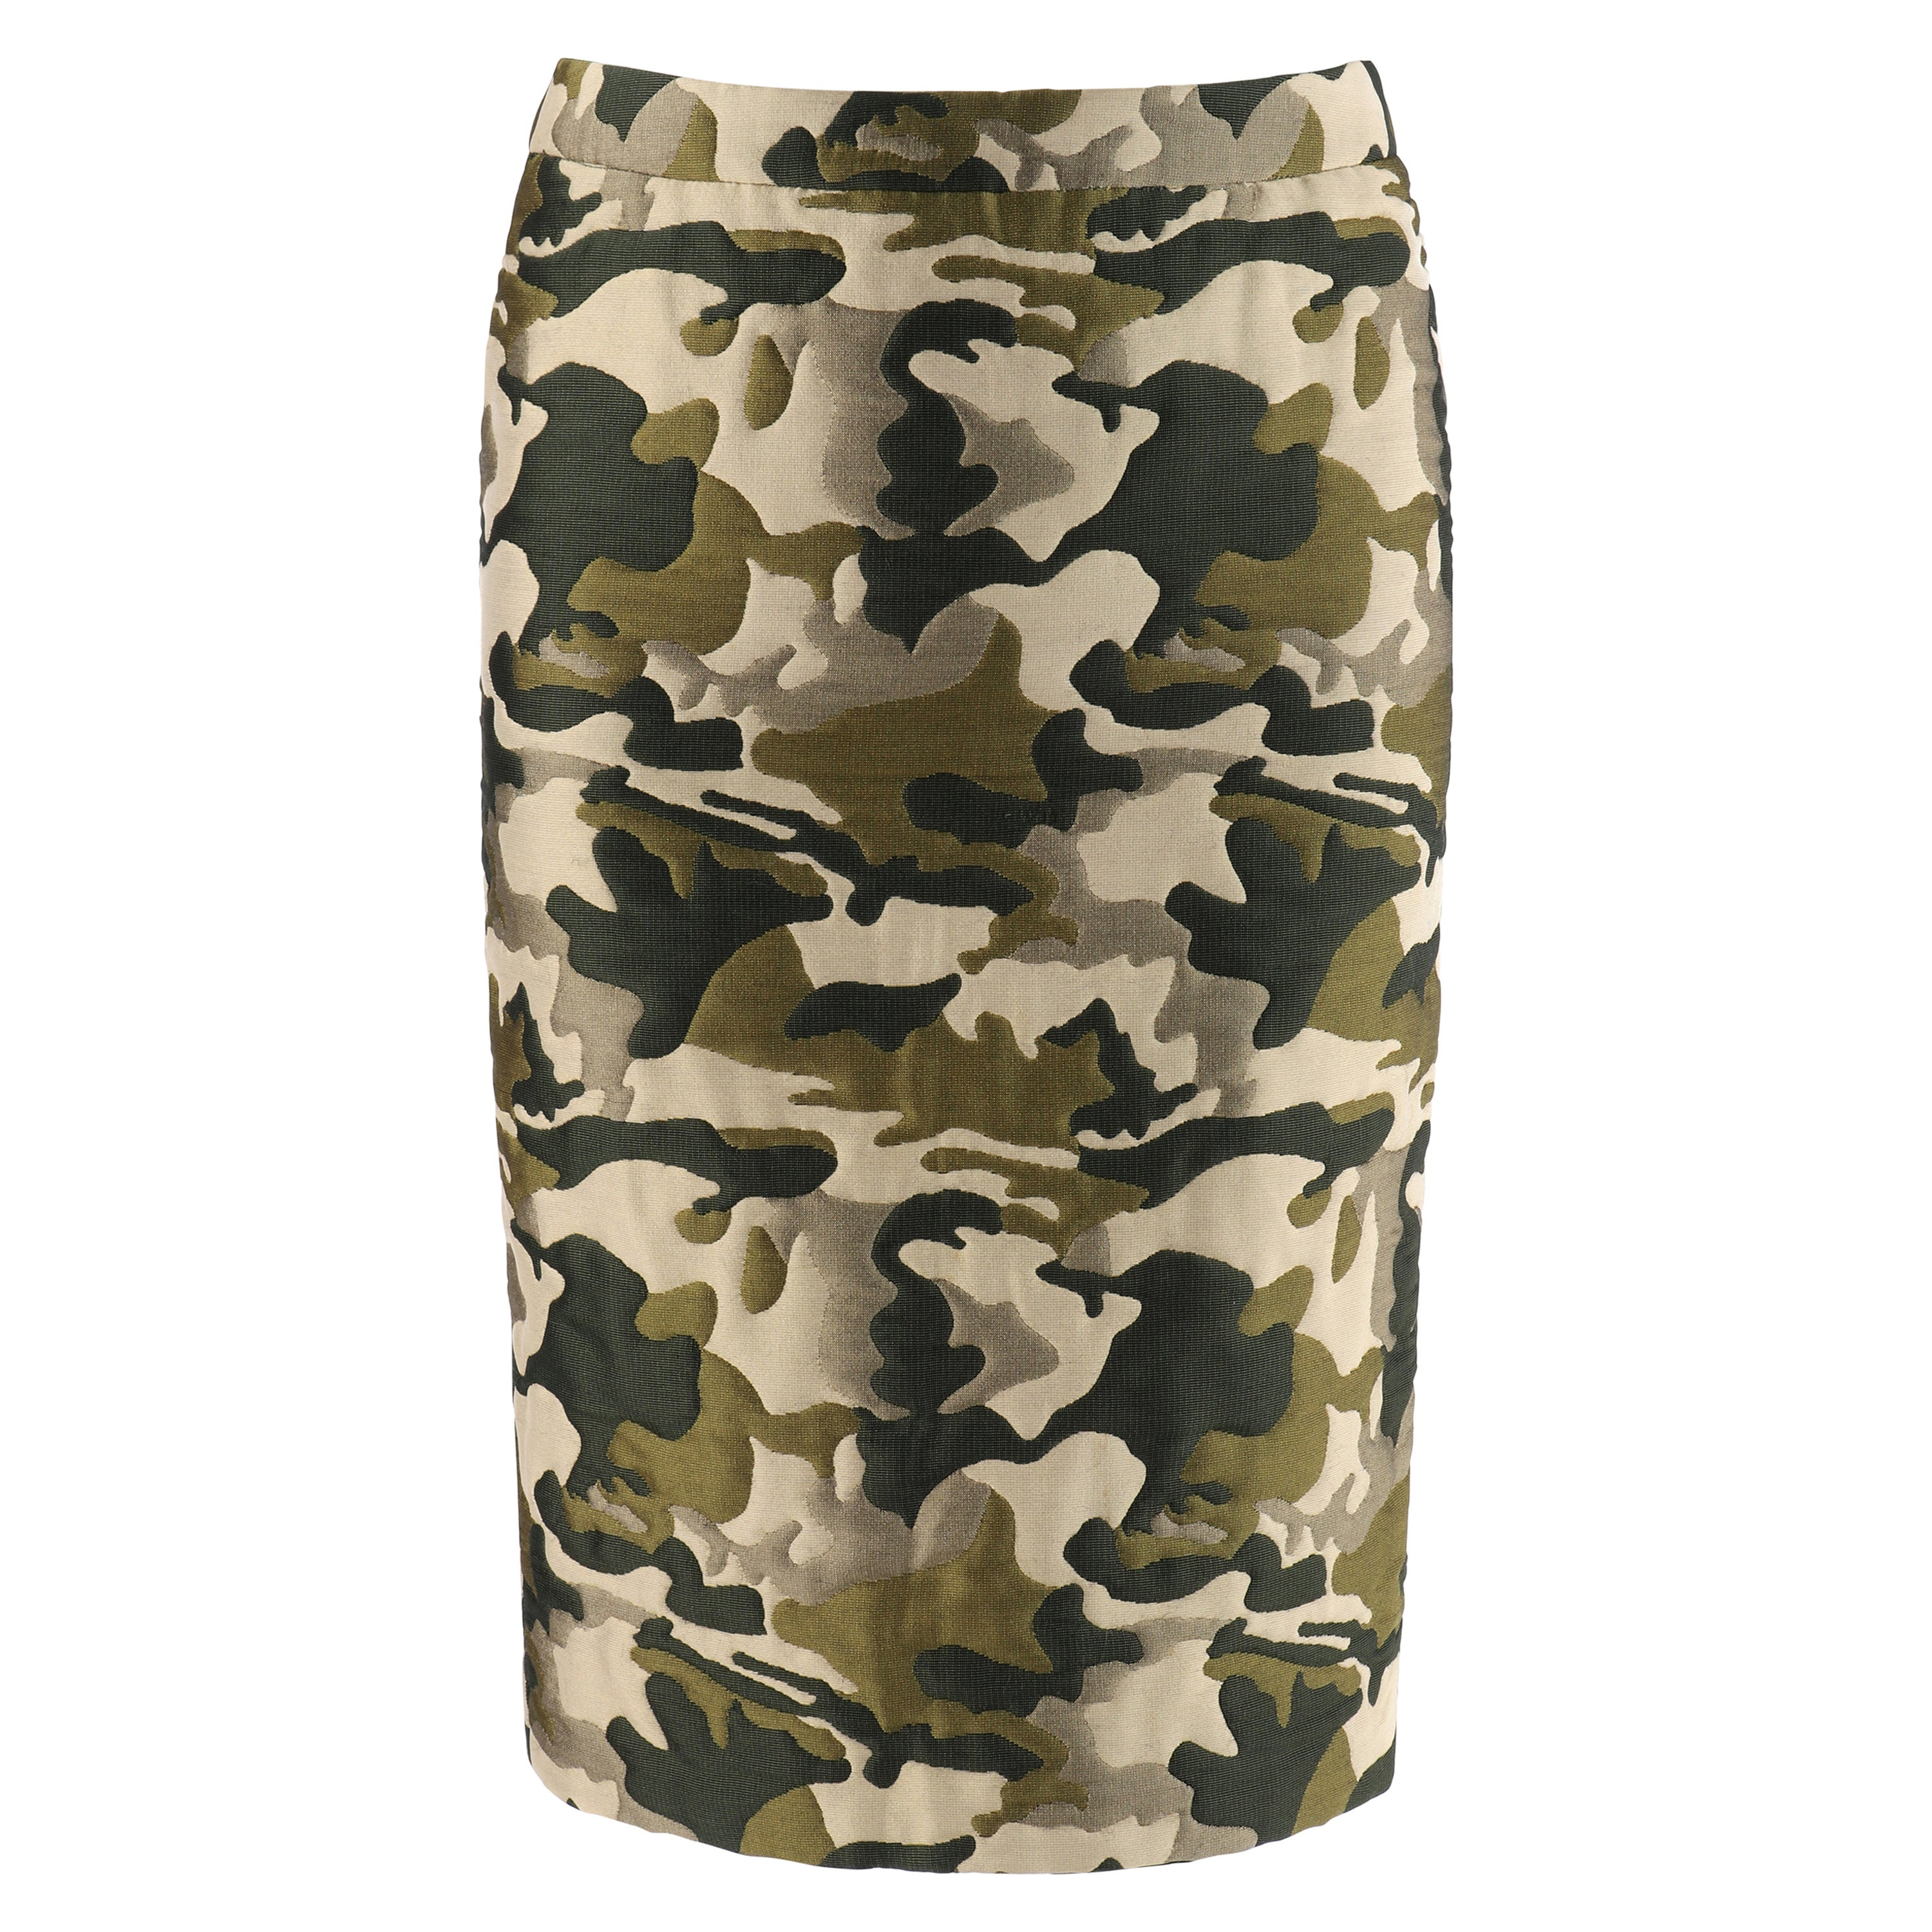 ALEXANDER McQUEEN S/S 1998 Green Camouflage Knee Length Pencil Skirt